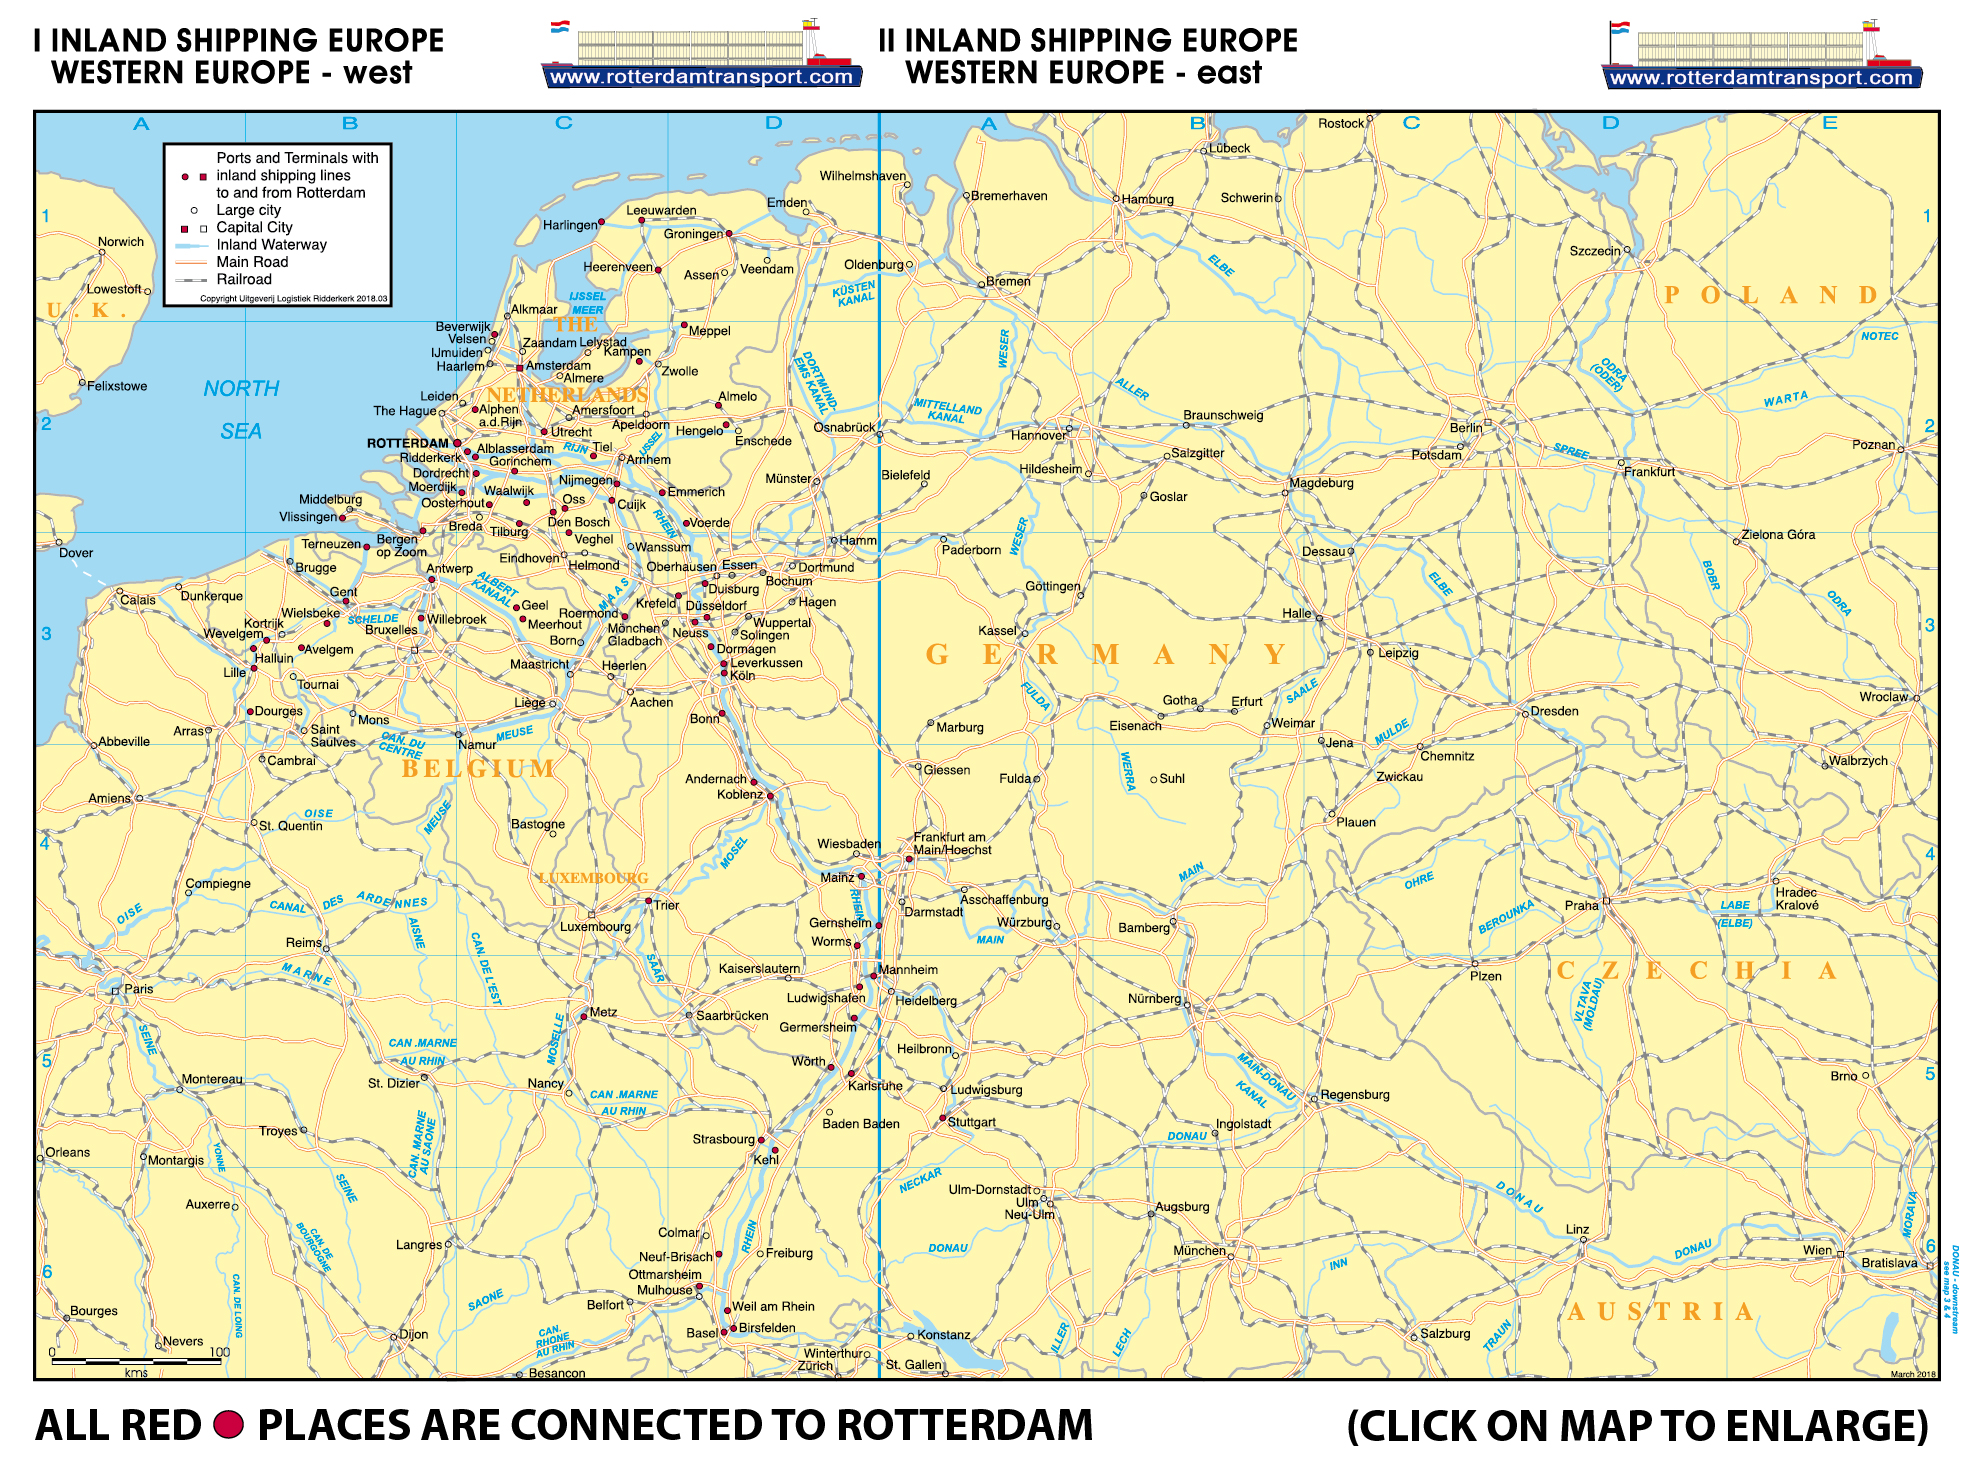 Map I U2013 Inland Shipping Europe U2013 Western Europe U2013 West | Map II Inland  Shipping U2013 Western Europe U2013 East